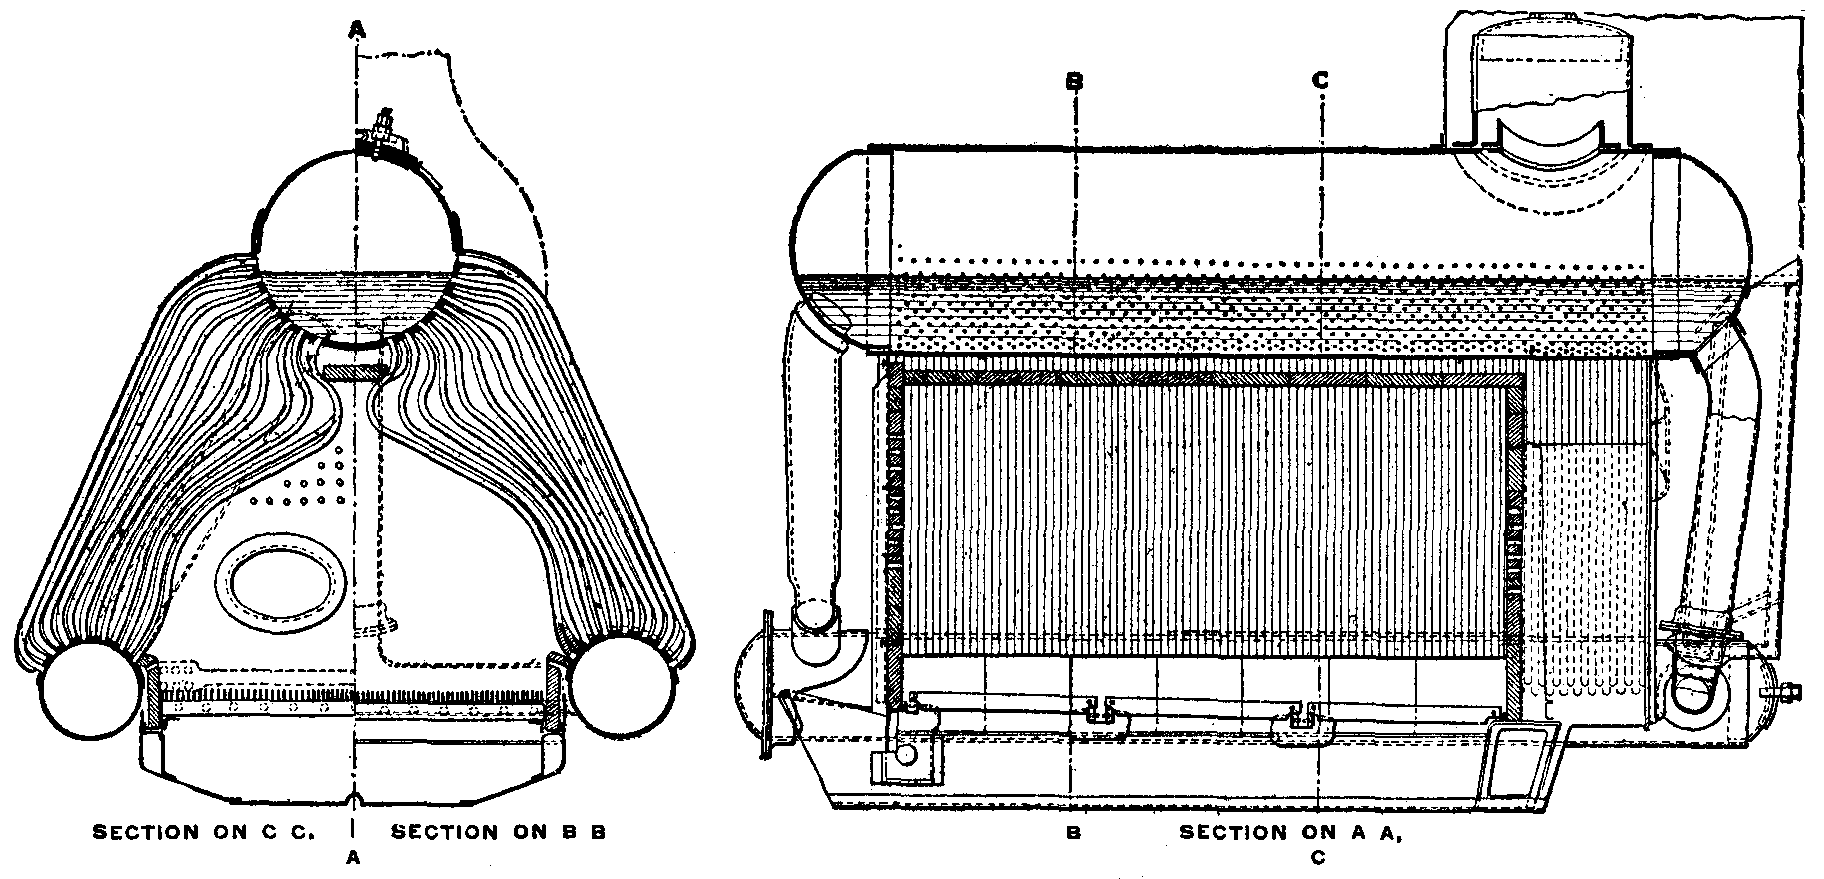 List of boiler types, by manufacturer - Wikiwand